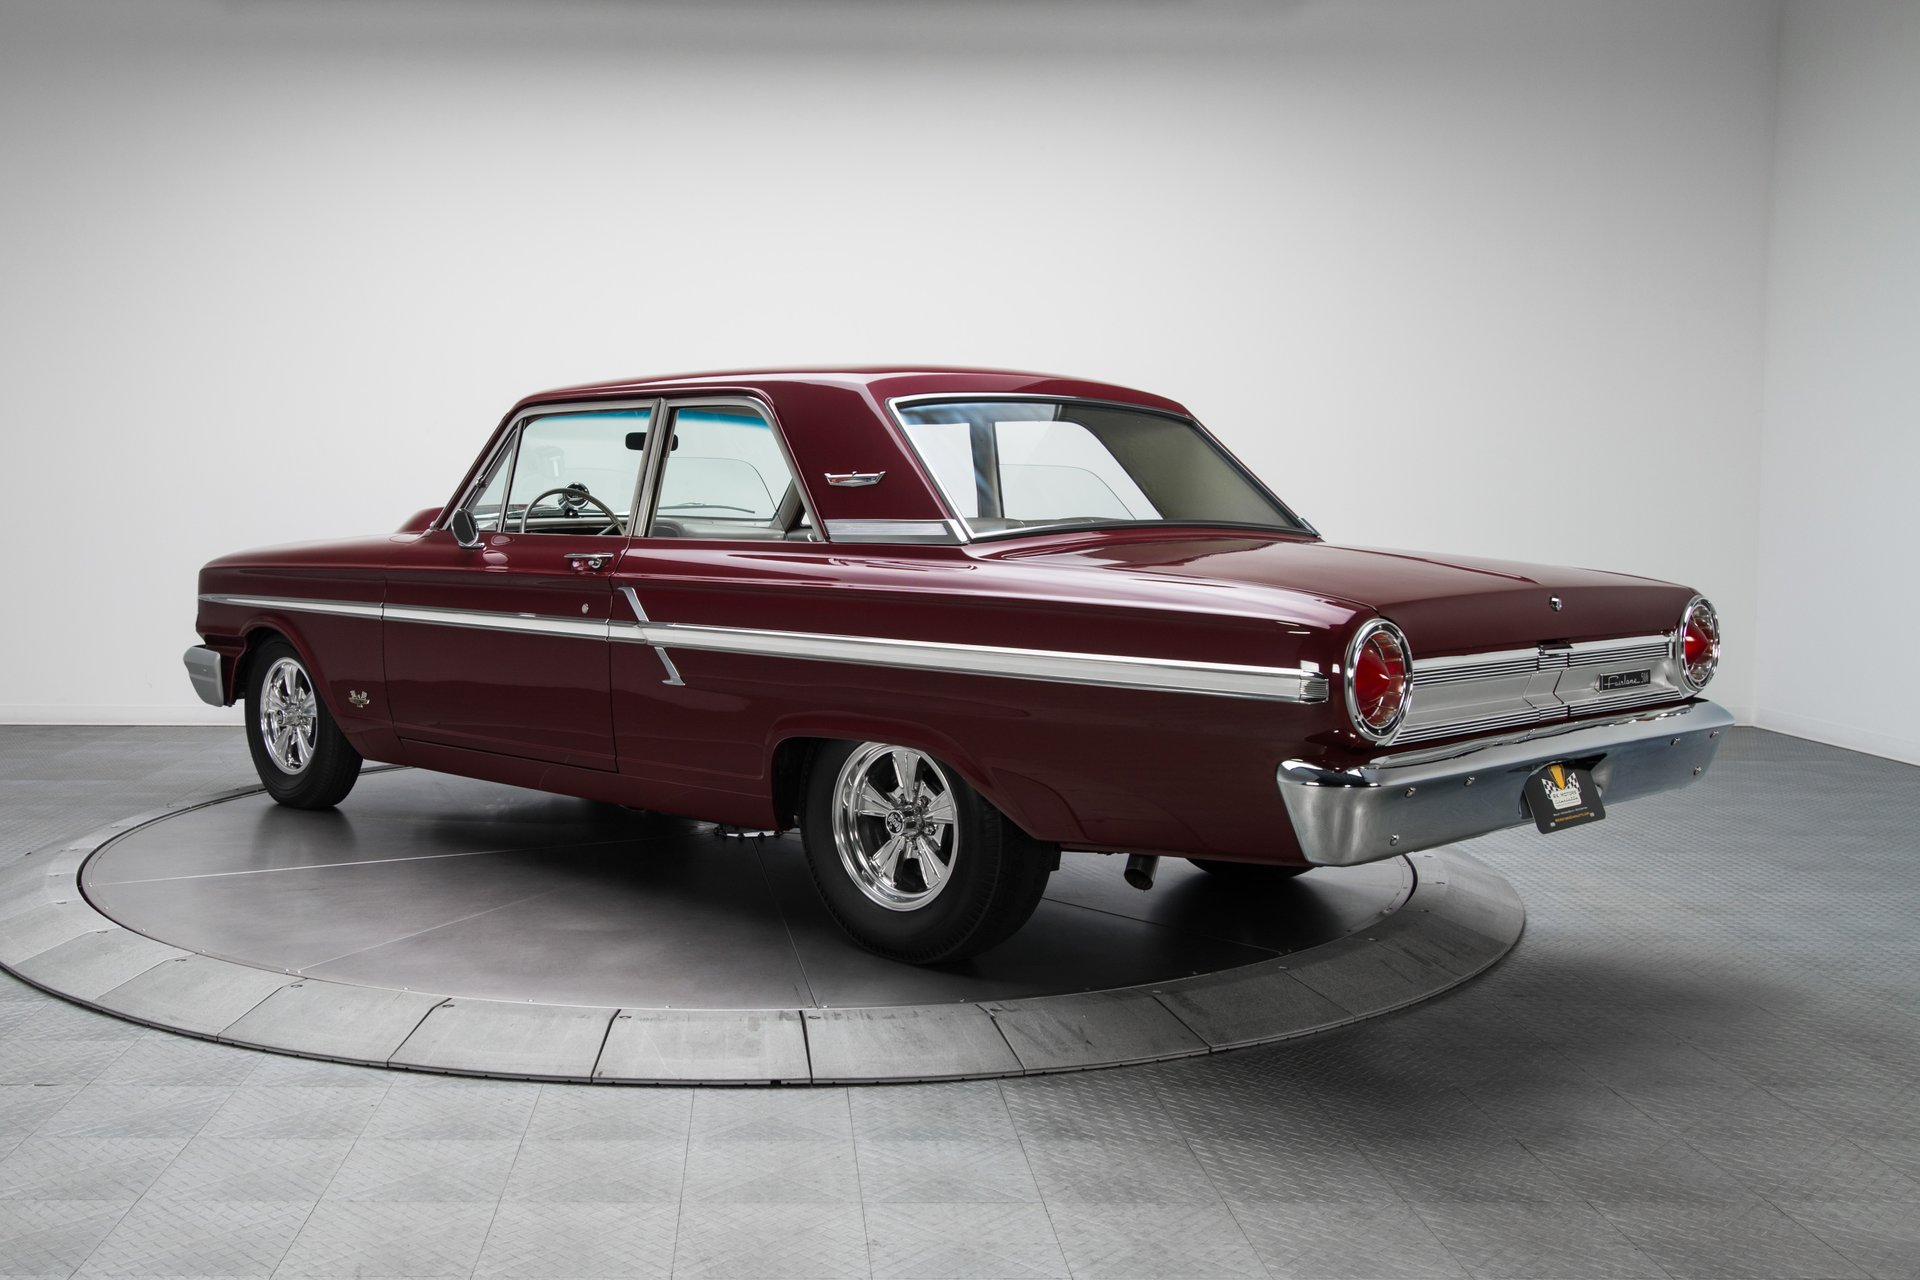 134589 1964 Ford Fairlane RK Motors Classic Cars for Sale